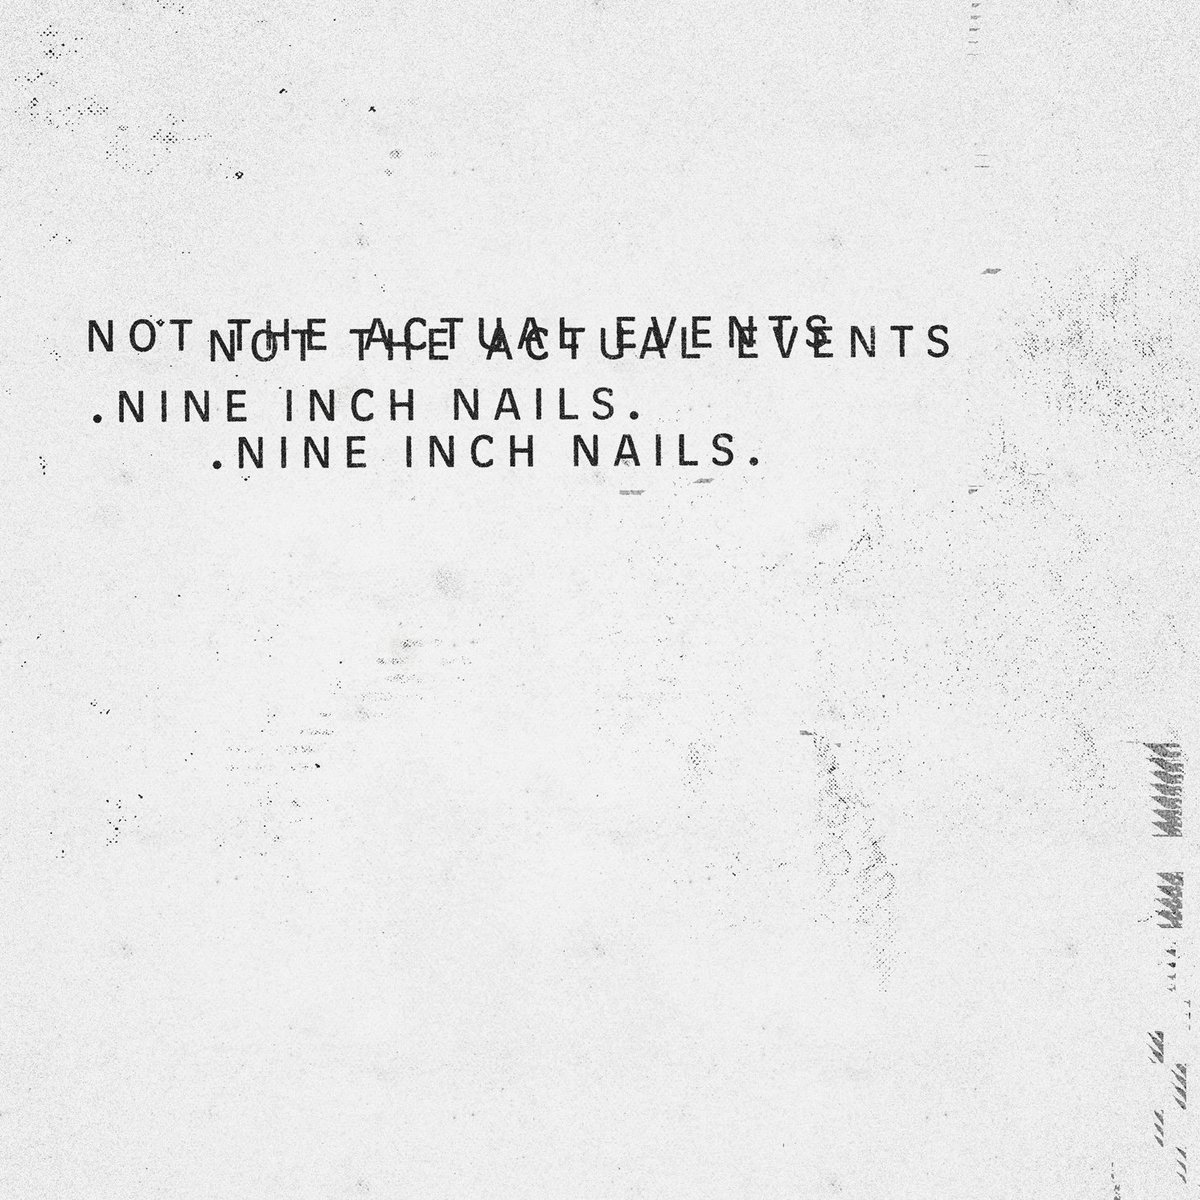 New Nine Inch Nails!  info: https://t.co/omnPAextCF https://t.co/CCSjlv2MjC